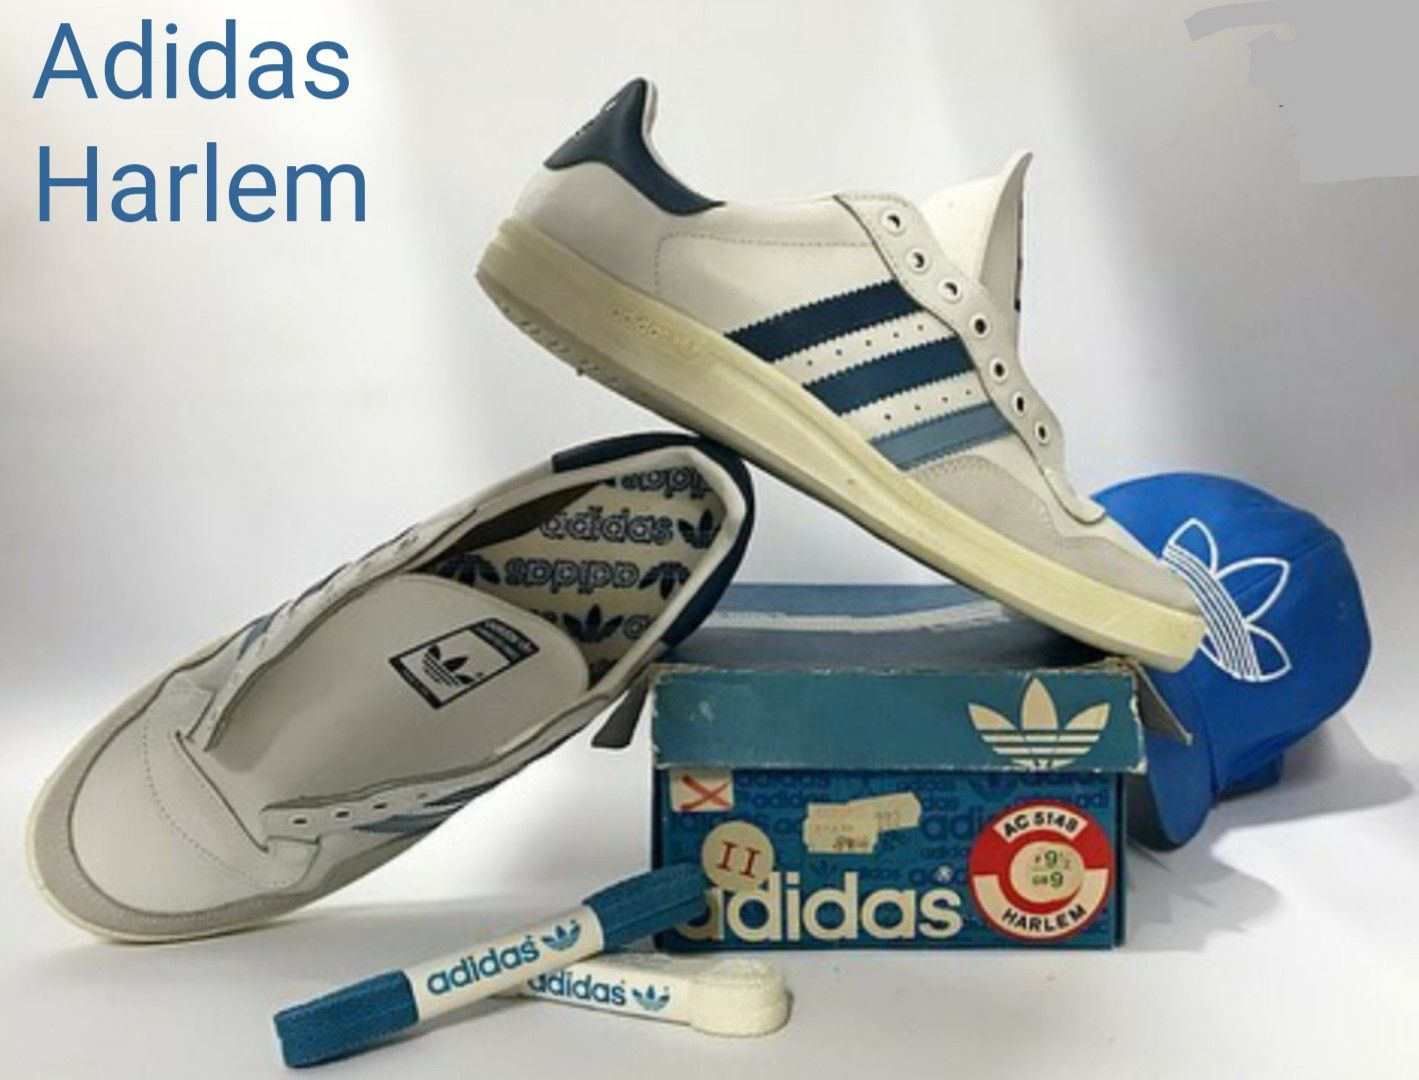 Vintage Adidas Harlem, made in Italy circa 1980 Cheers